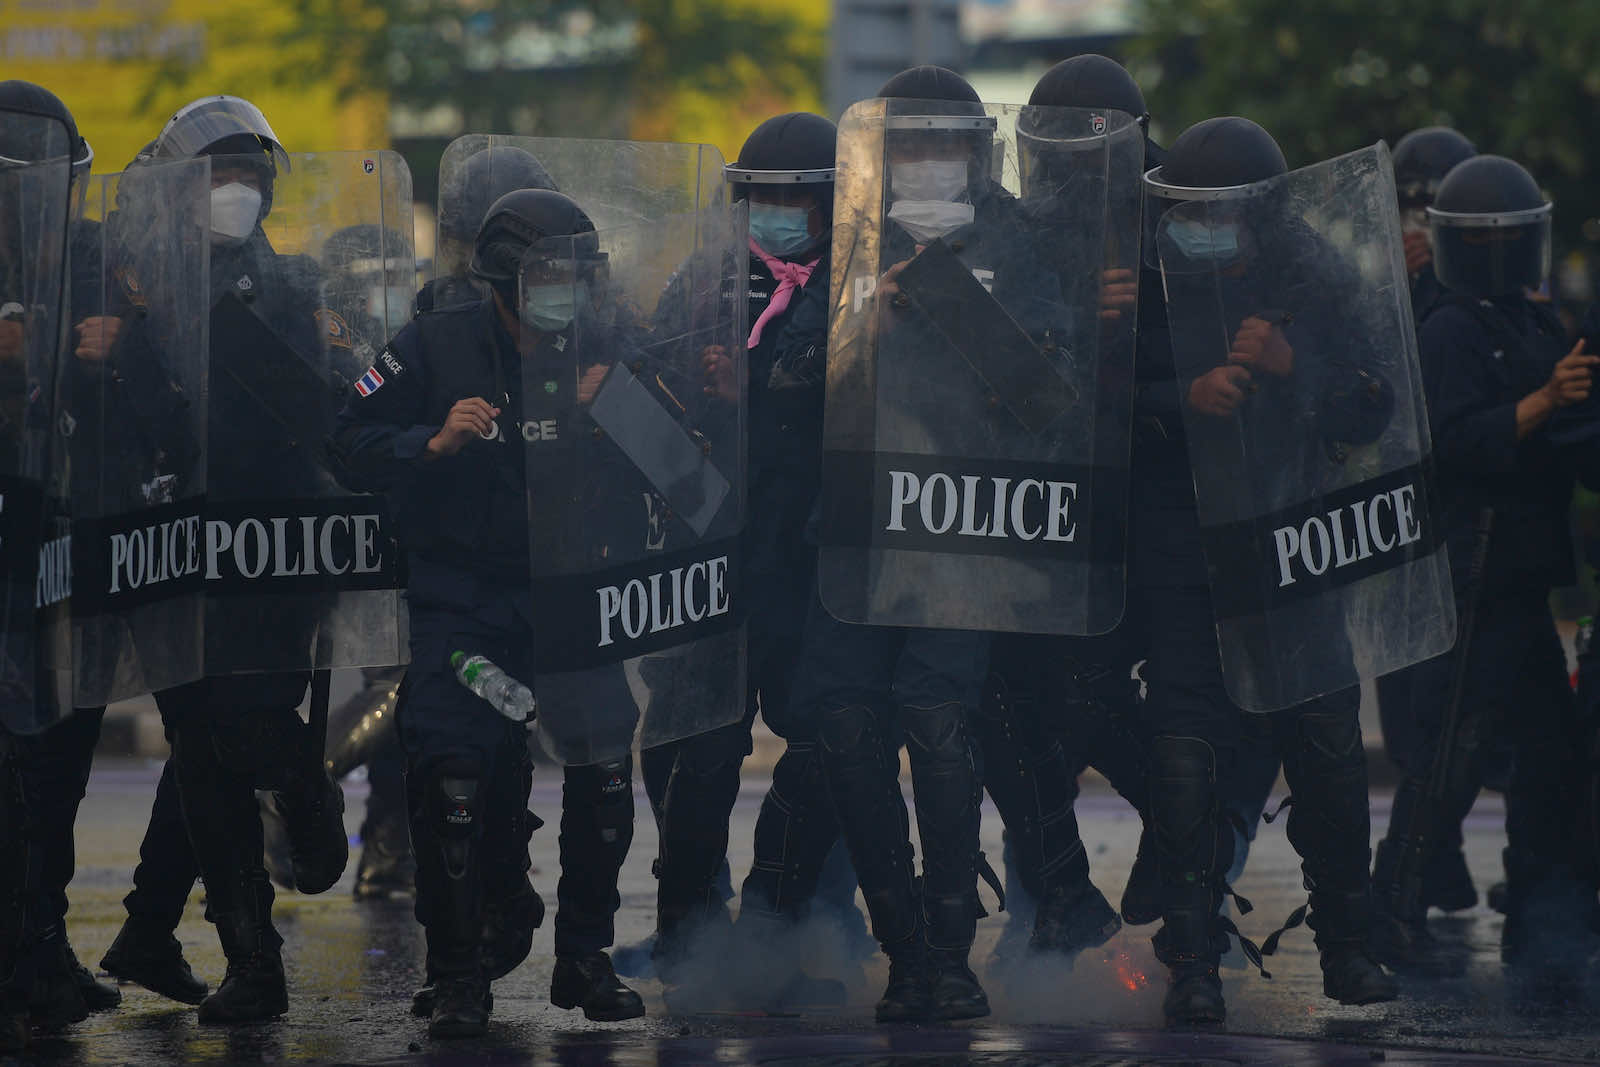 A police line during anti-government protests in Bangkok on 29 August (Vachira Vachira/NurPhoto via Getty Images)